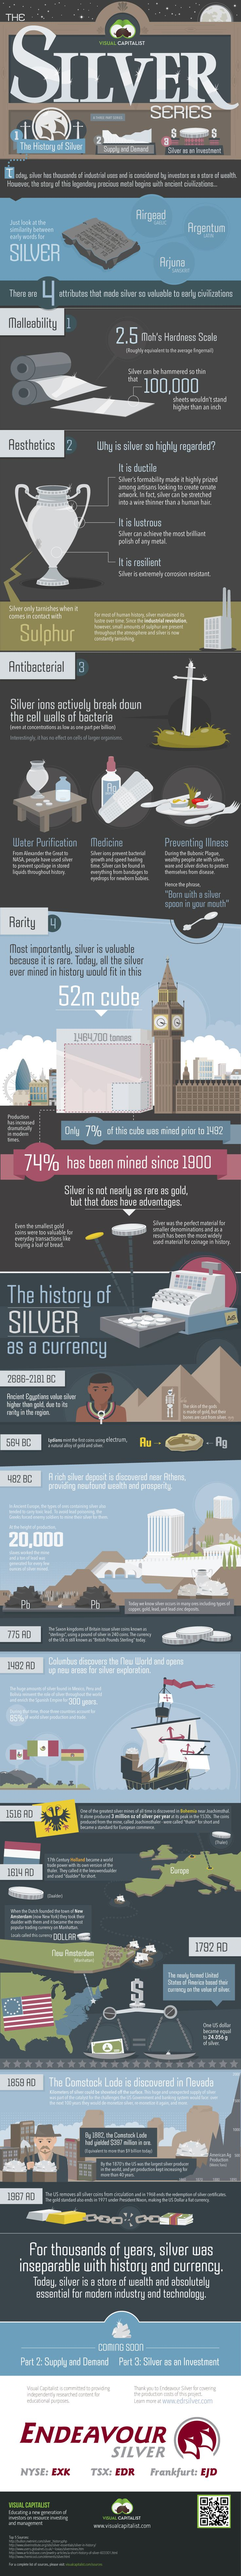 01 HISTORY OF SILVER